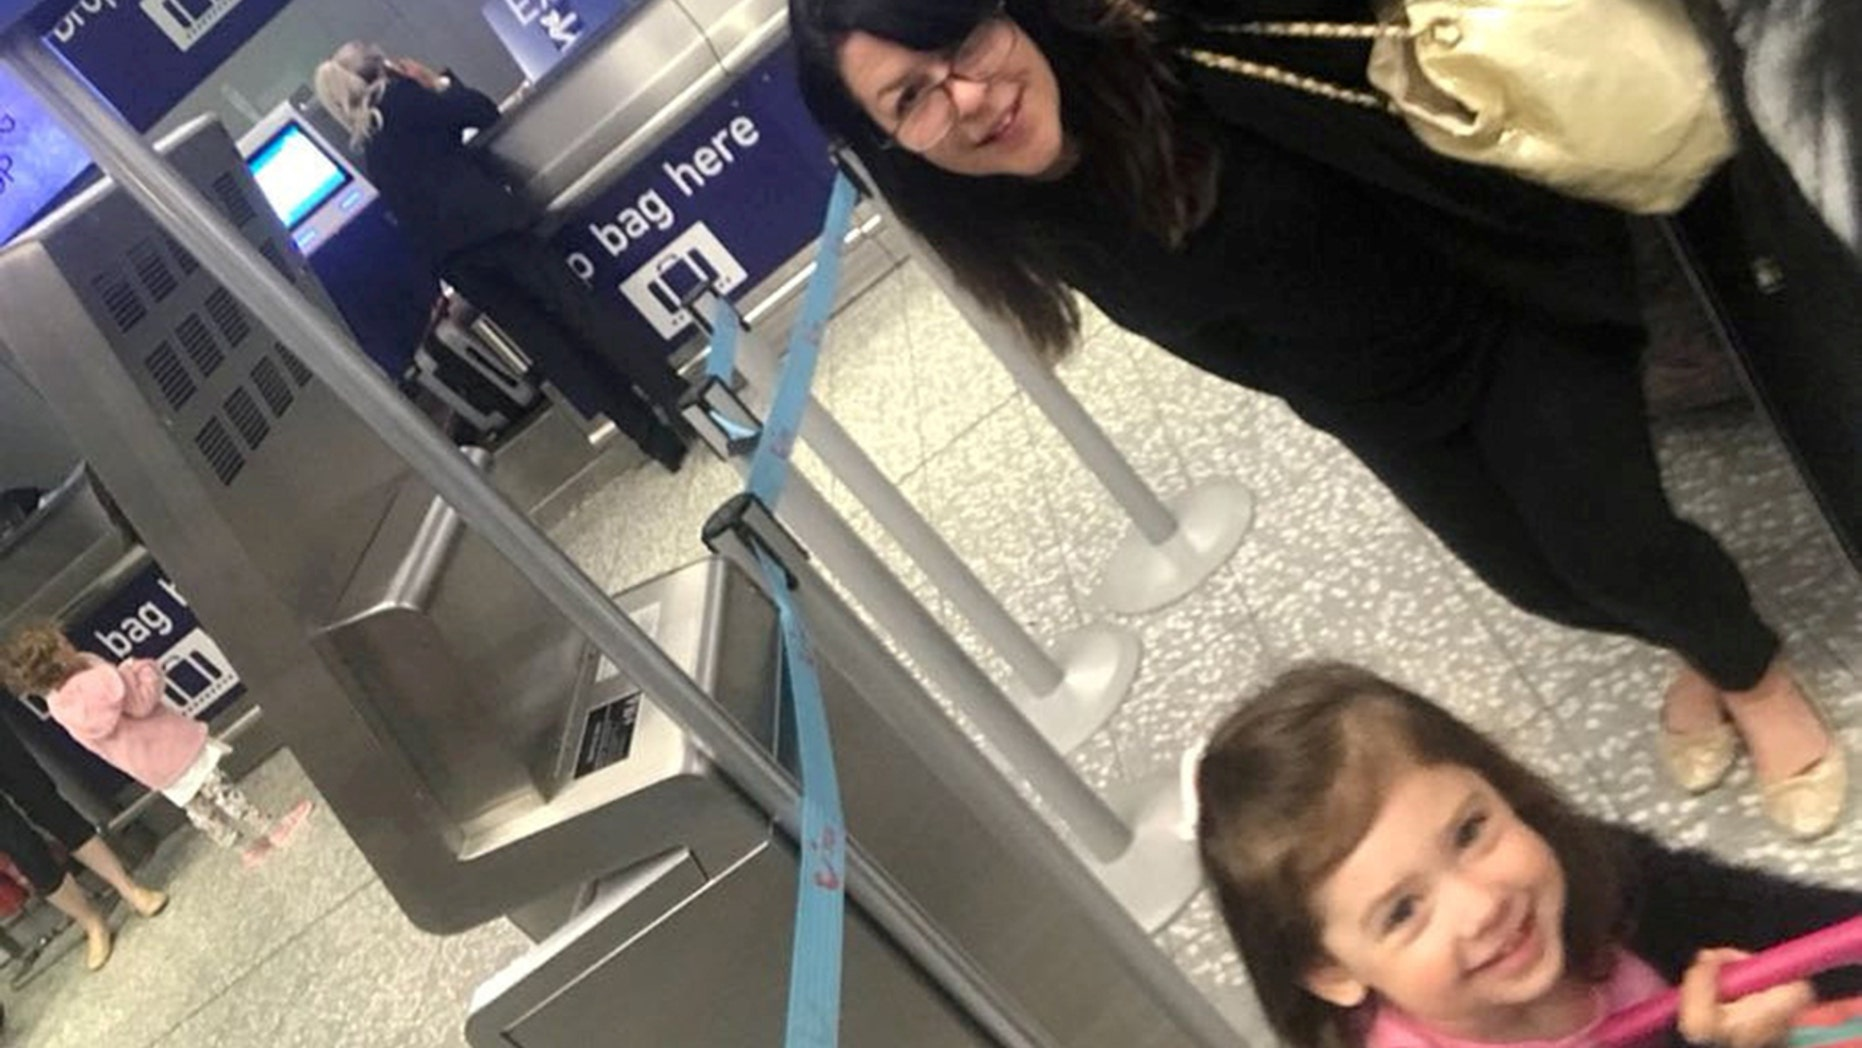 Hayley Lewis, 28, was about to embark on daughter Sydney's first-ever flight along with other family members when an airport worker refused to let her pass because of a ripped page in her passport book.